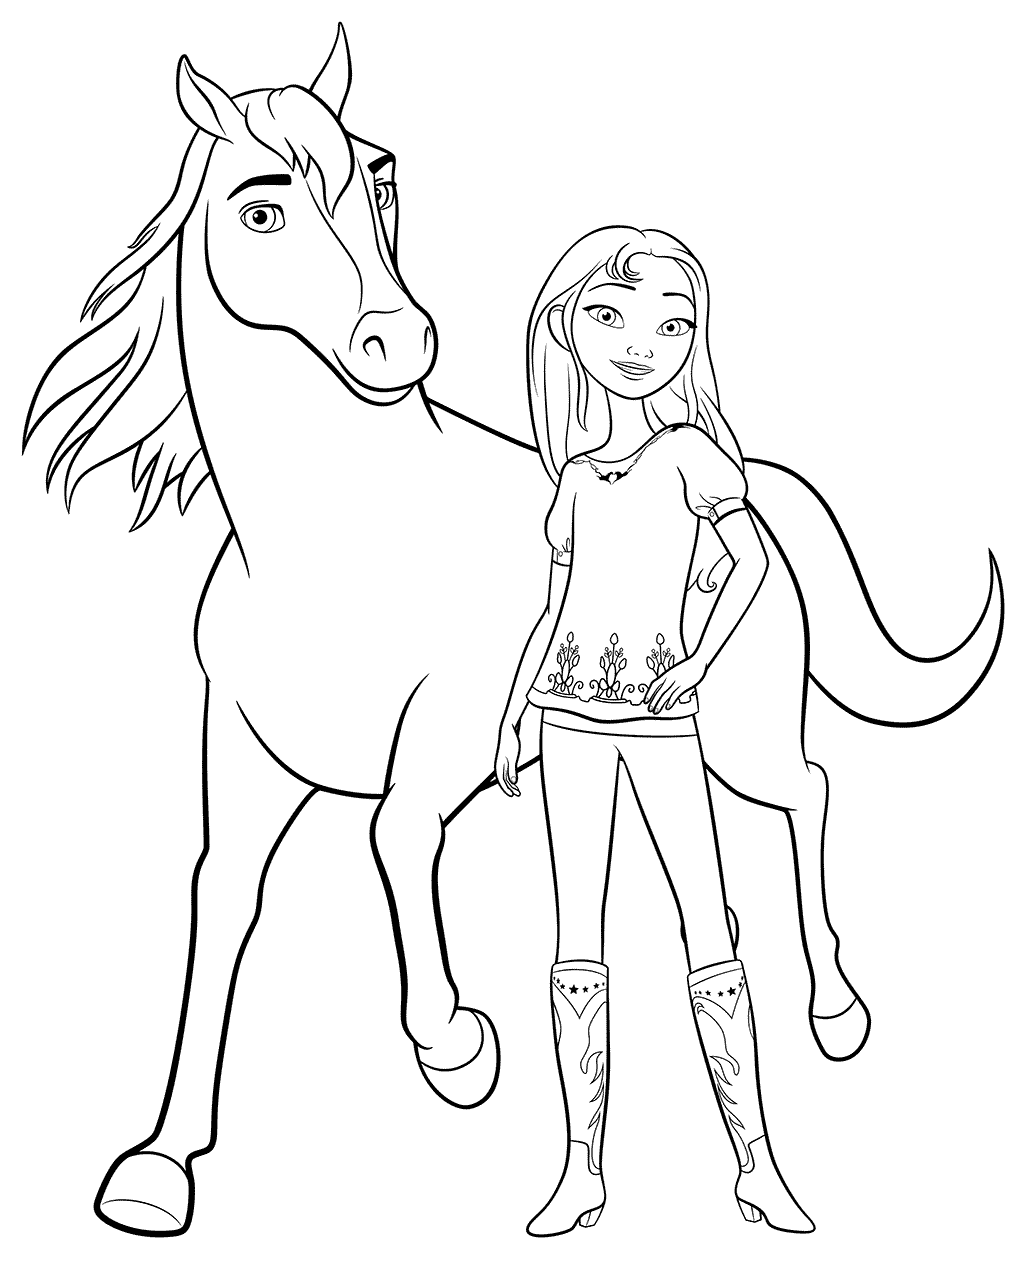 Spirit The Horse Coloring Pages - GetColoringPages.com | 1272x1024